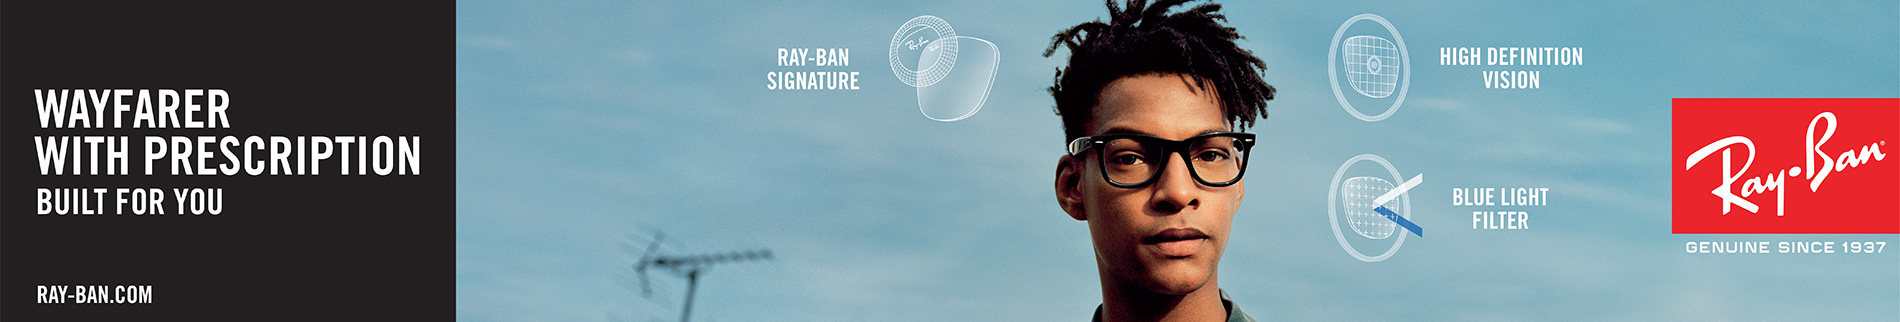 Prescription Ray-Ban and Sunglasses lenses with logo